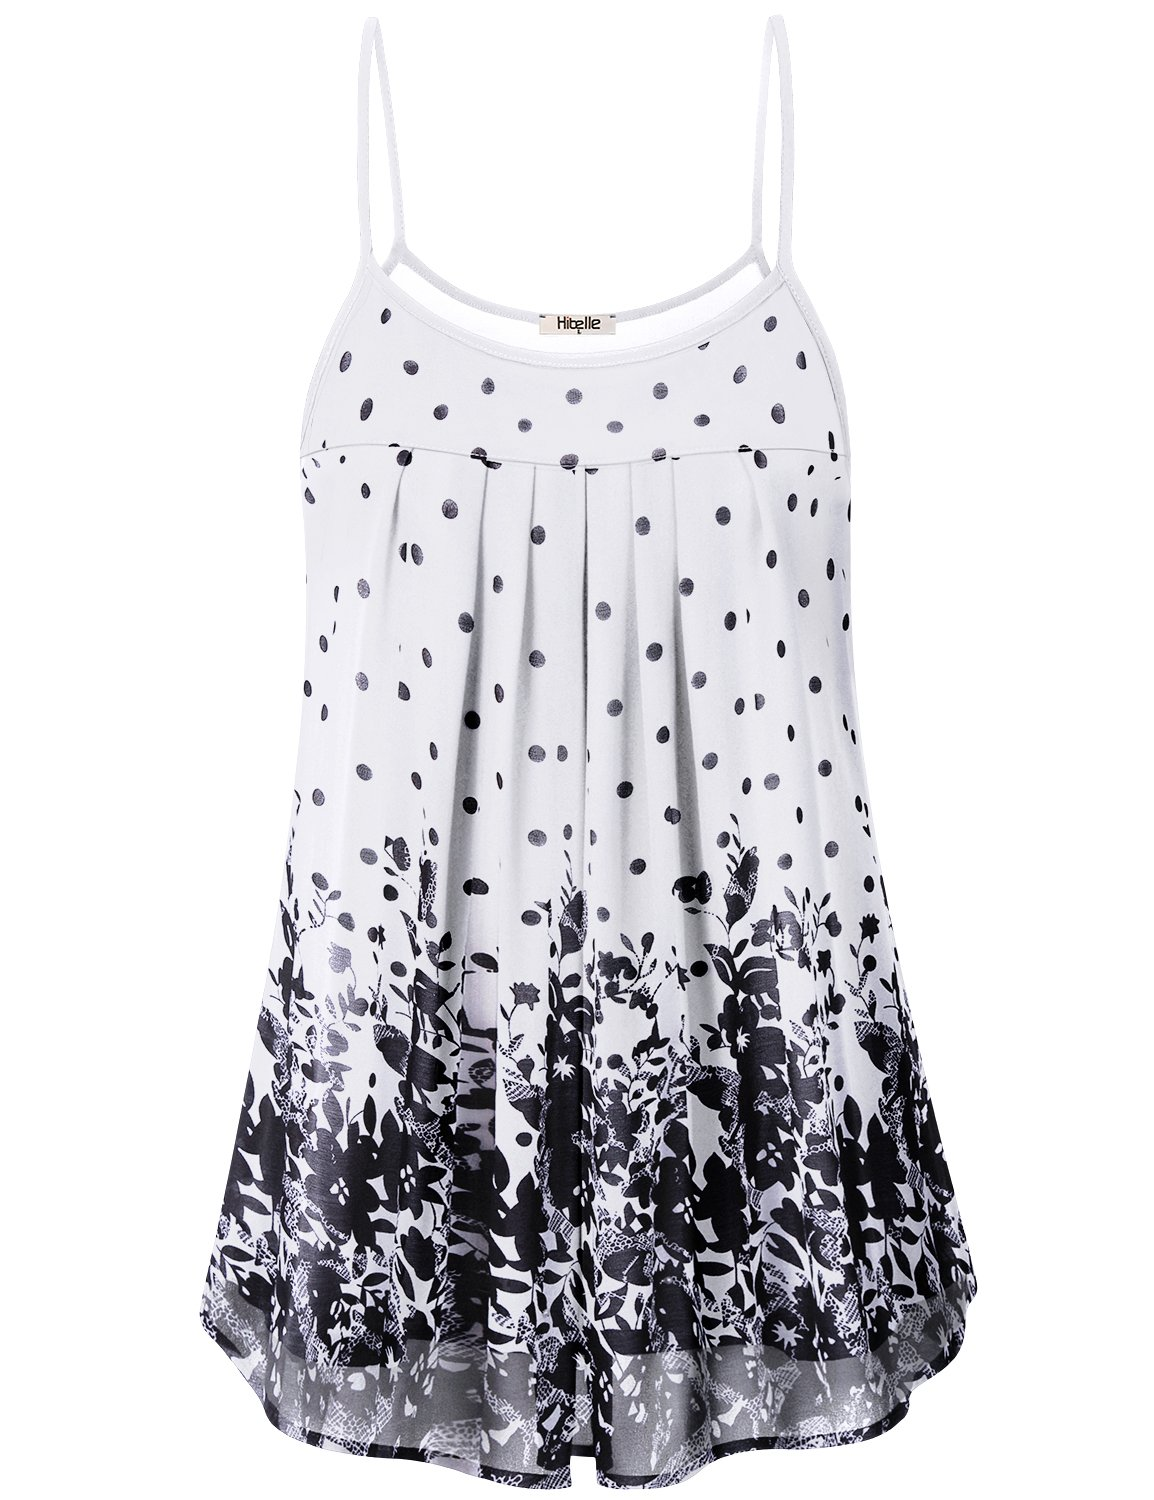 Hibelle White Flowy Tank Top, Womens Summer Long Camisole Pretty Flower Floral Print Pleated Drapey Front Hawaii Style Dressy Chiffon Blouse House Outdoor Comfort Great Tunic Black L